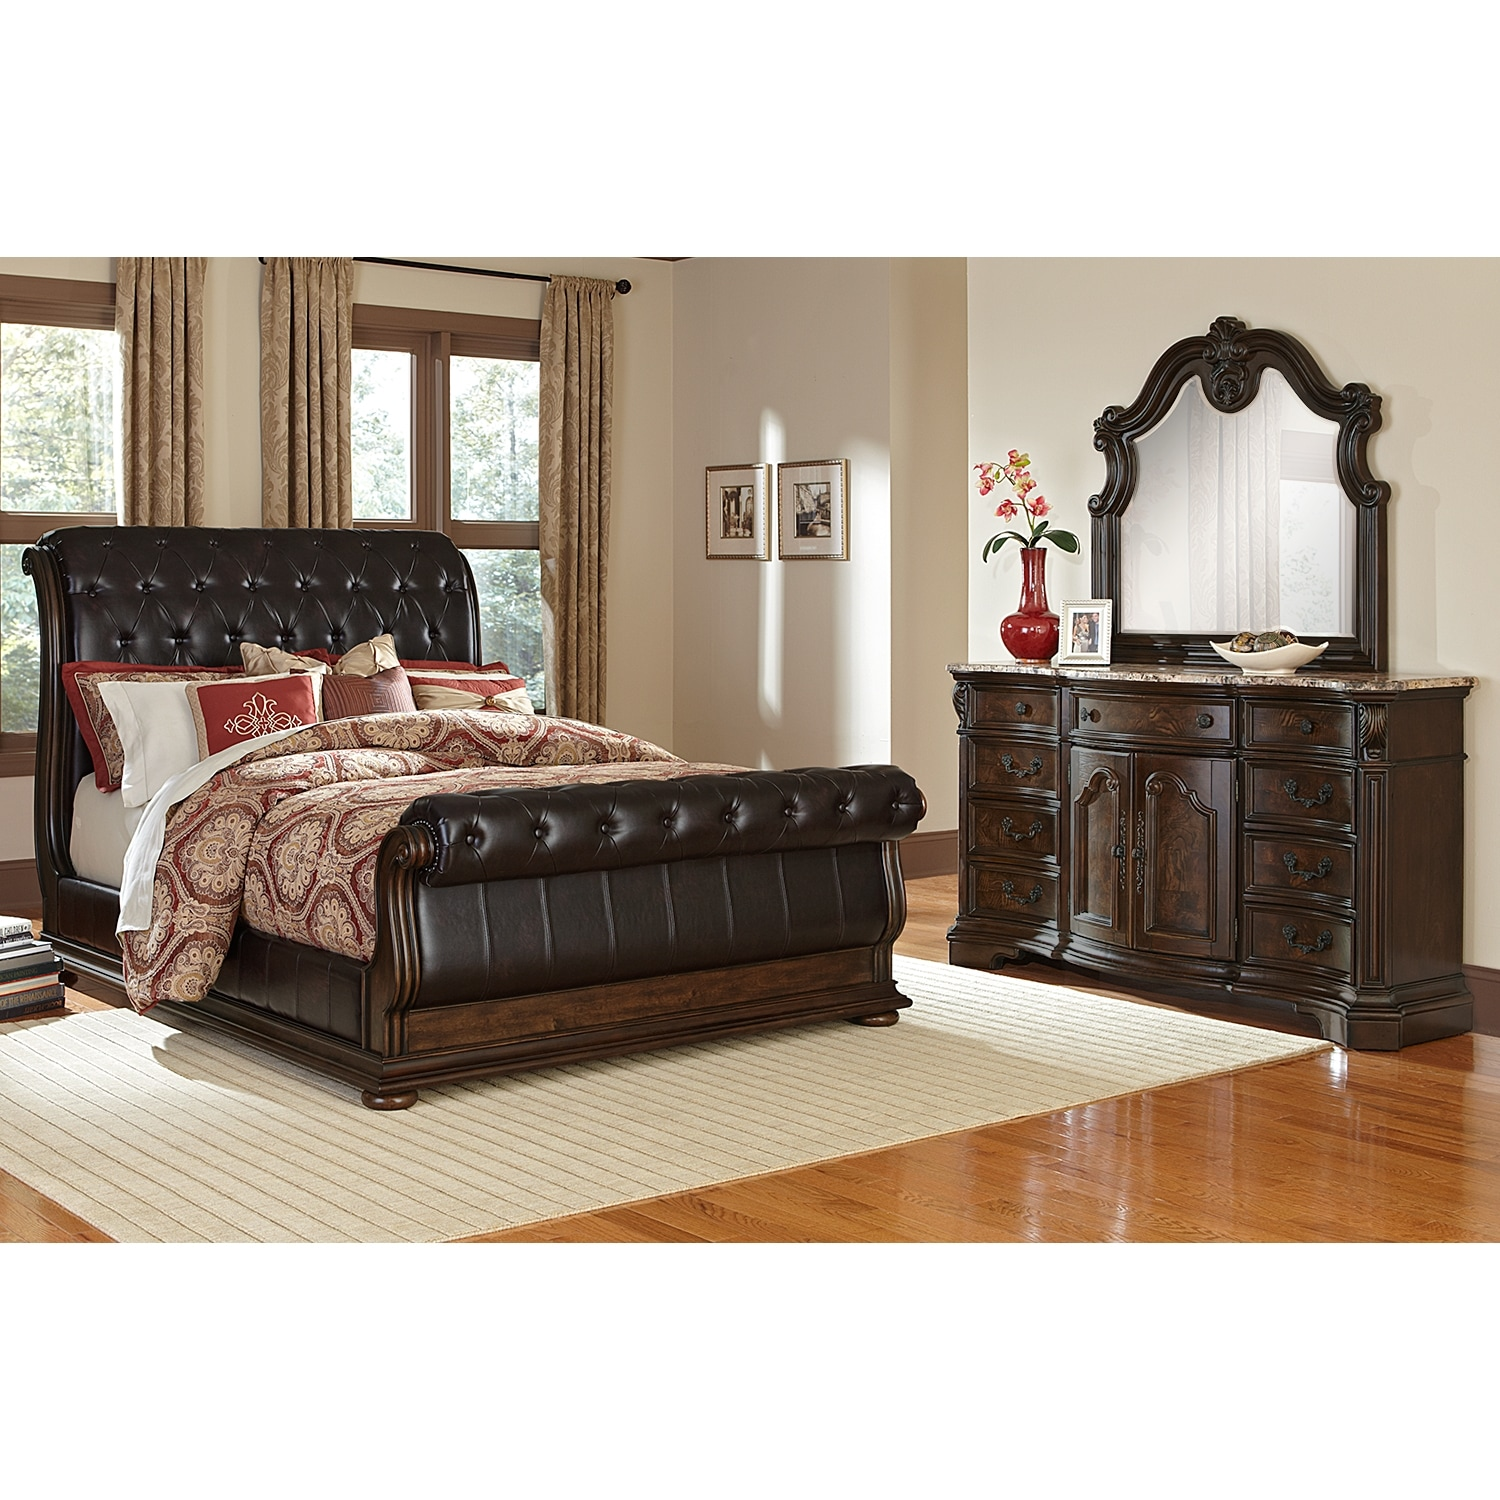 Monticello 5 Piece Upholstered Sleigh Bedroom Set With Dresser And Mirror Value City Furniture And Mattresses